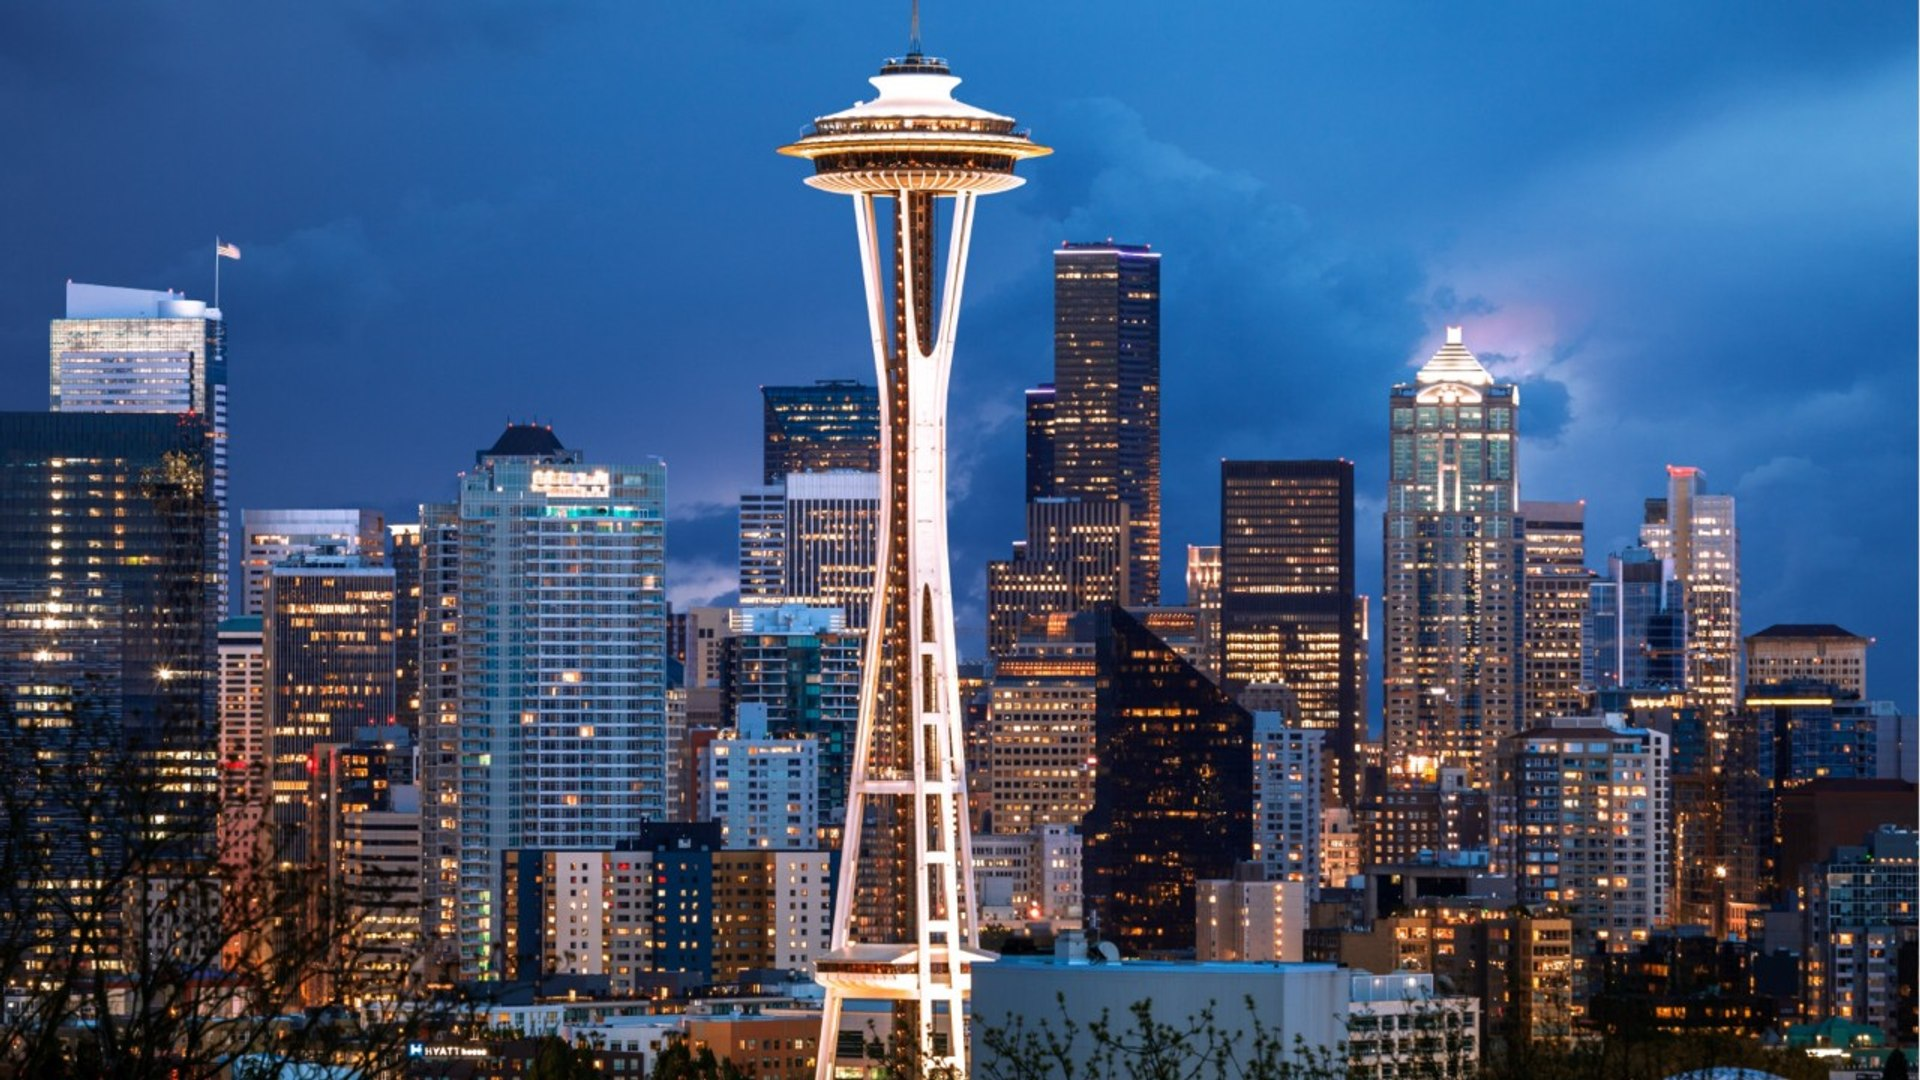 Seattle Hiked Its Minimum Wage, So Employers Cut Workers' Hours